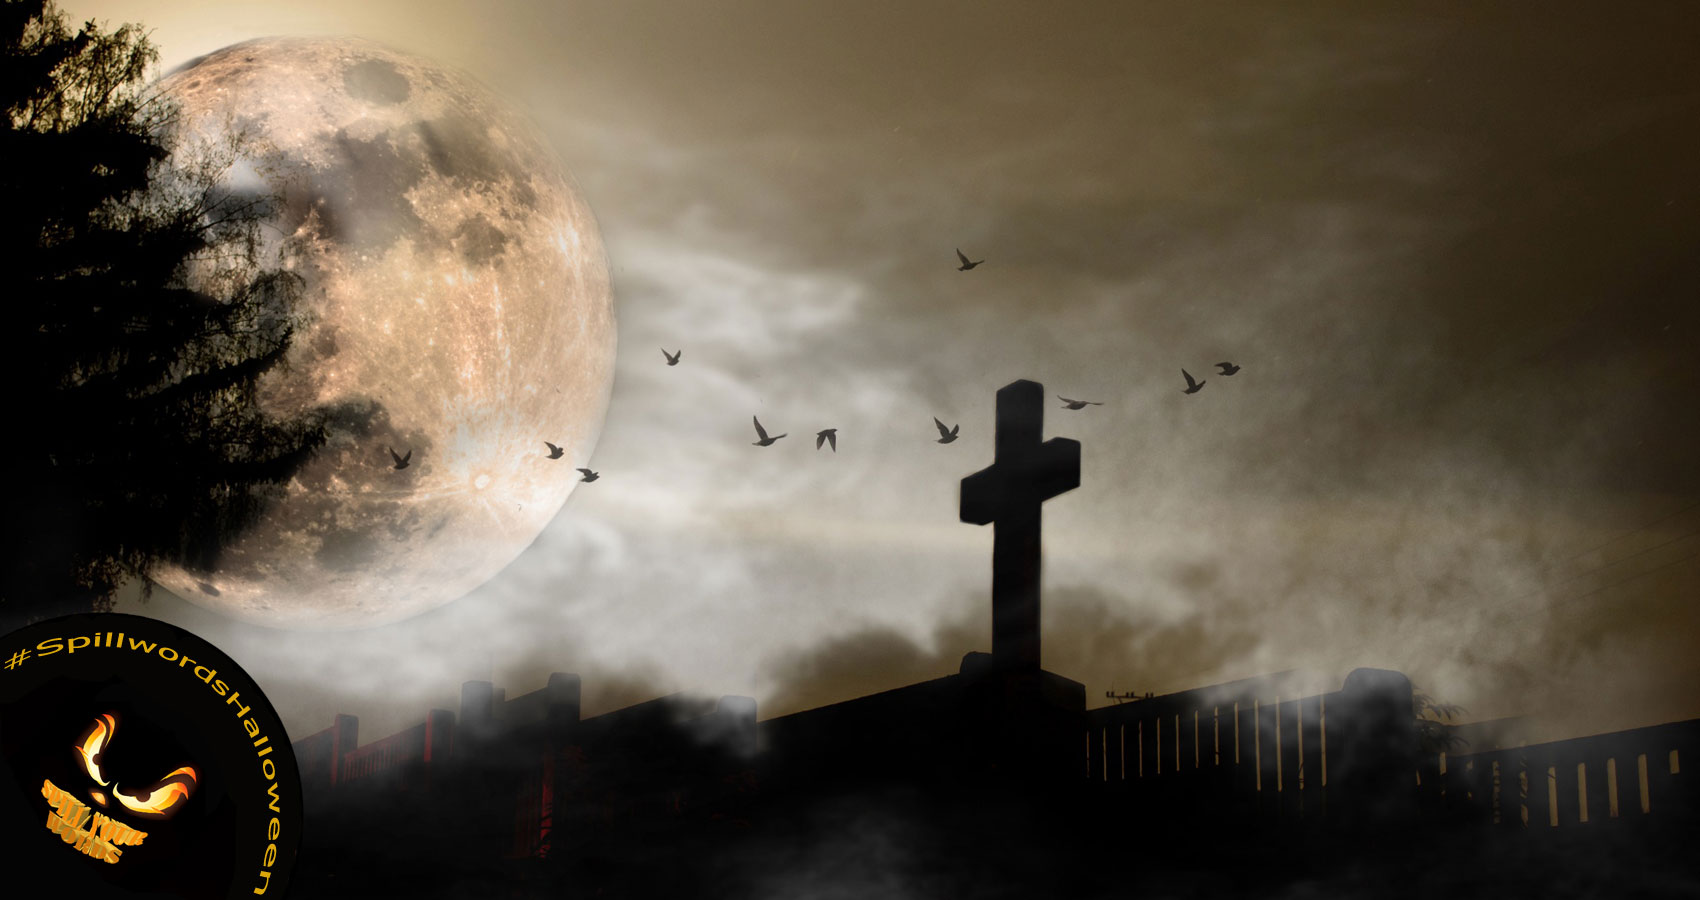 Trick or Treat, micropoetry written by Melisa at Spillwords.com